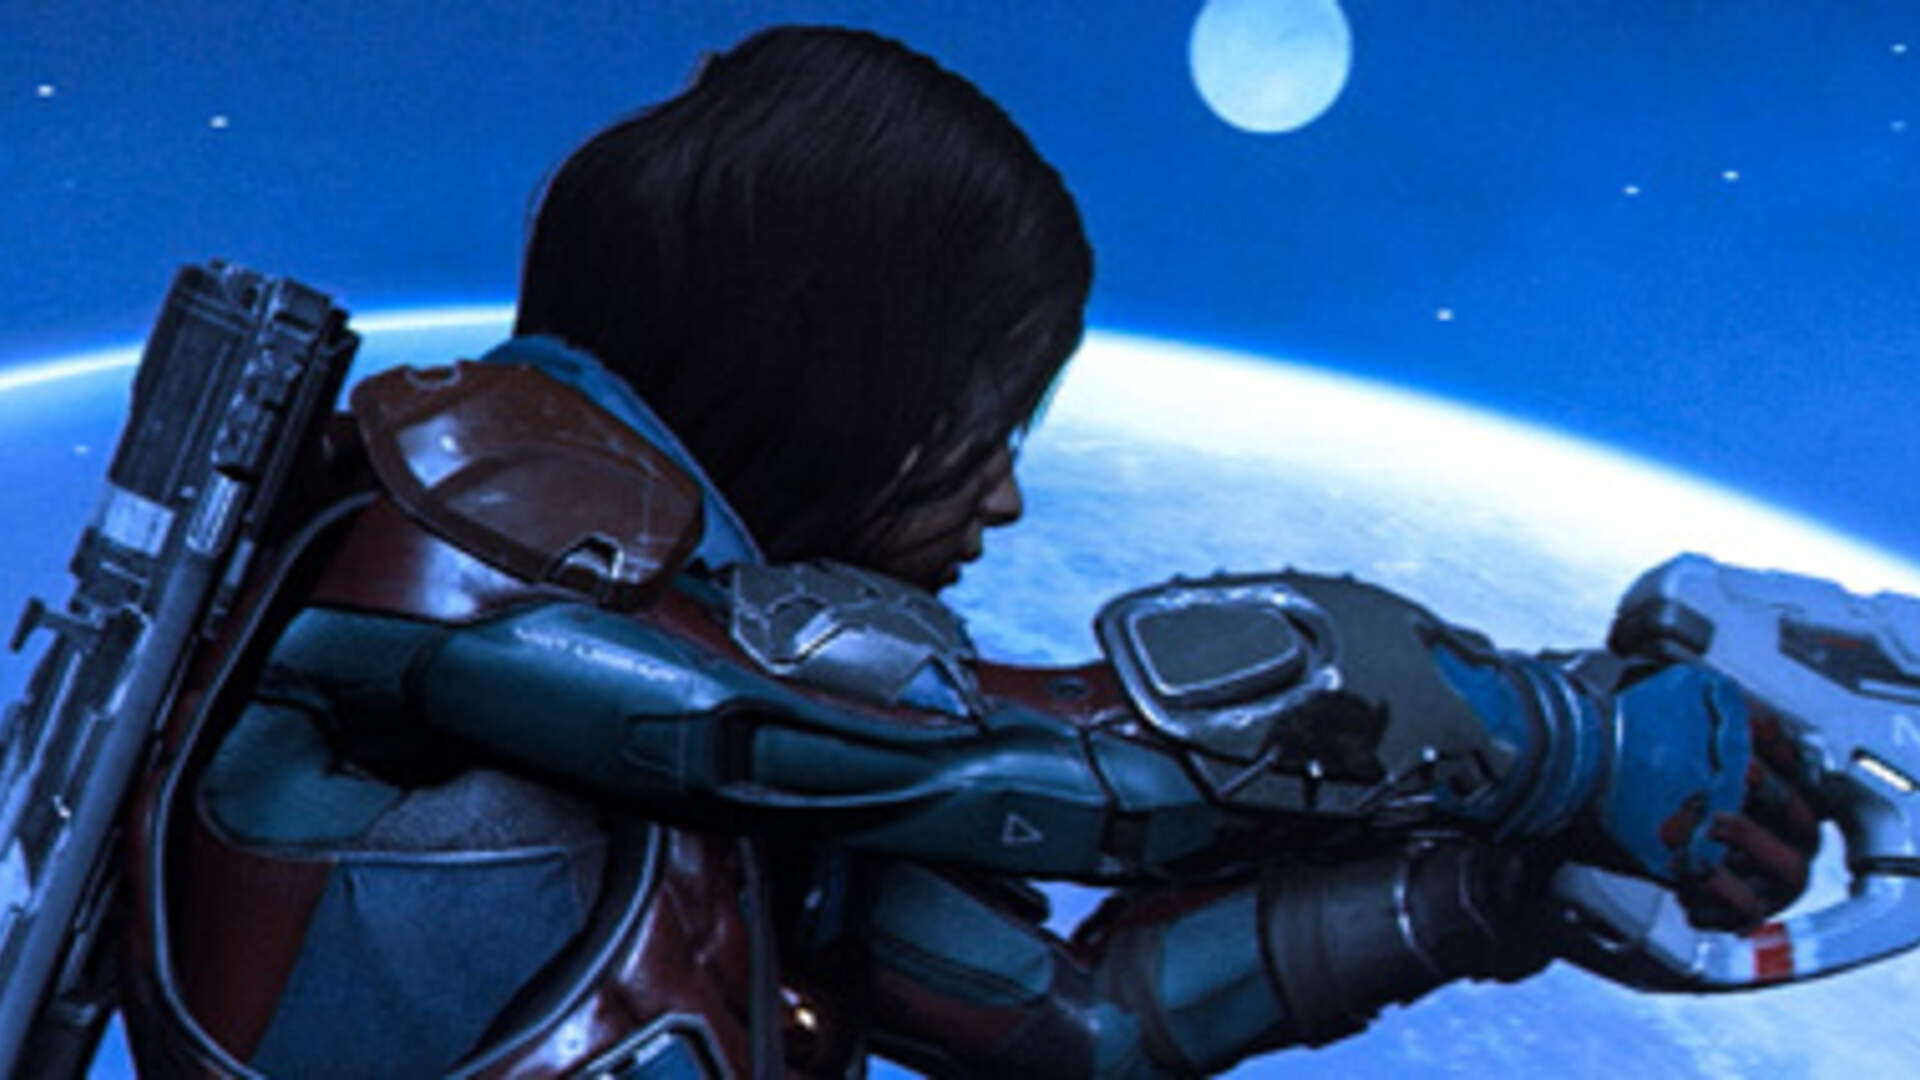 Mass Effect Andromeda: How Well Does it Balance Action and RPG?